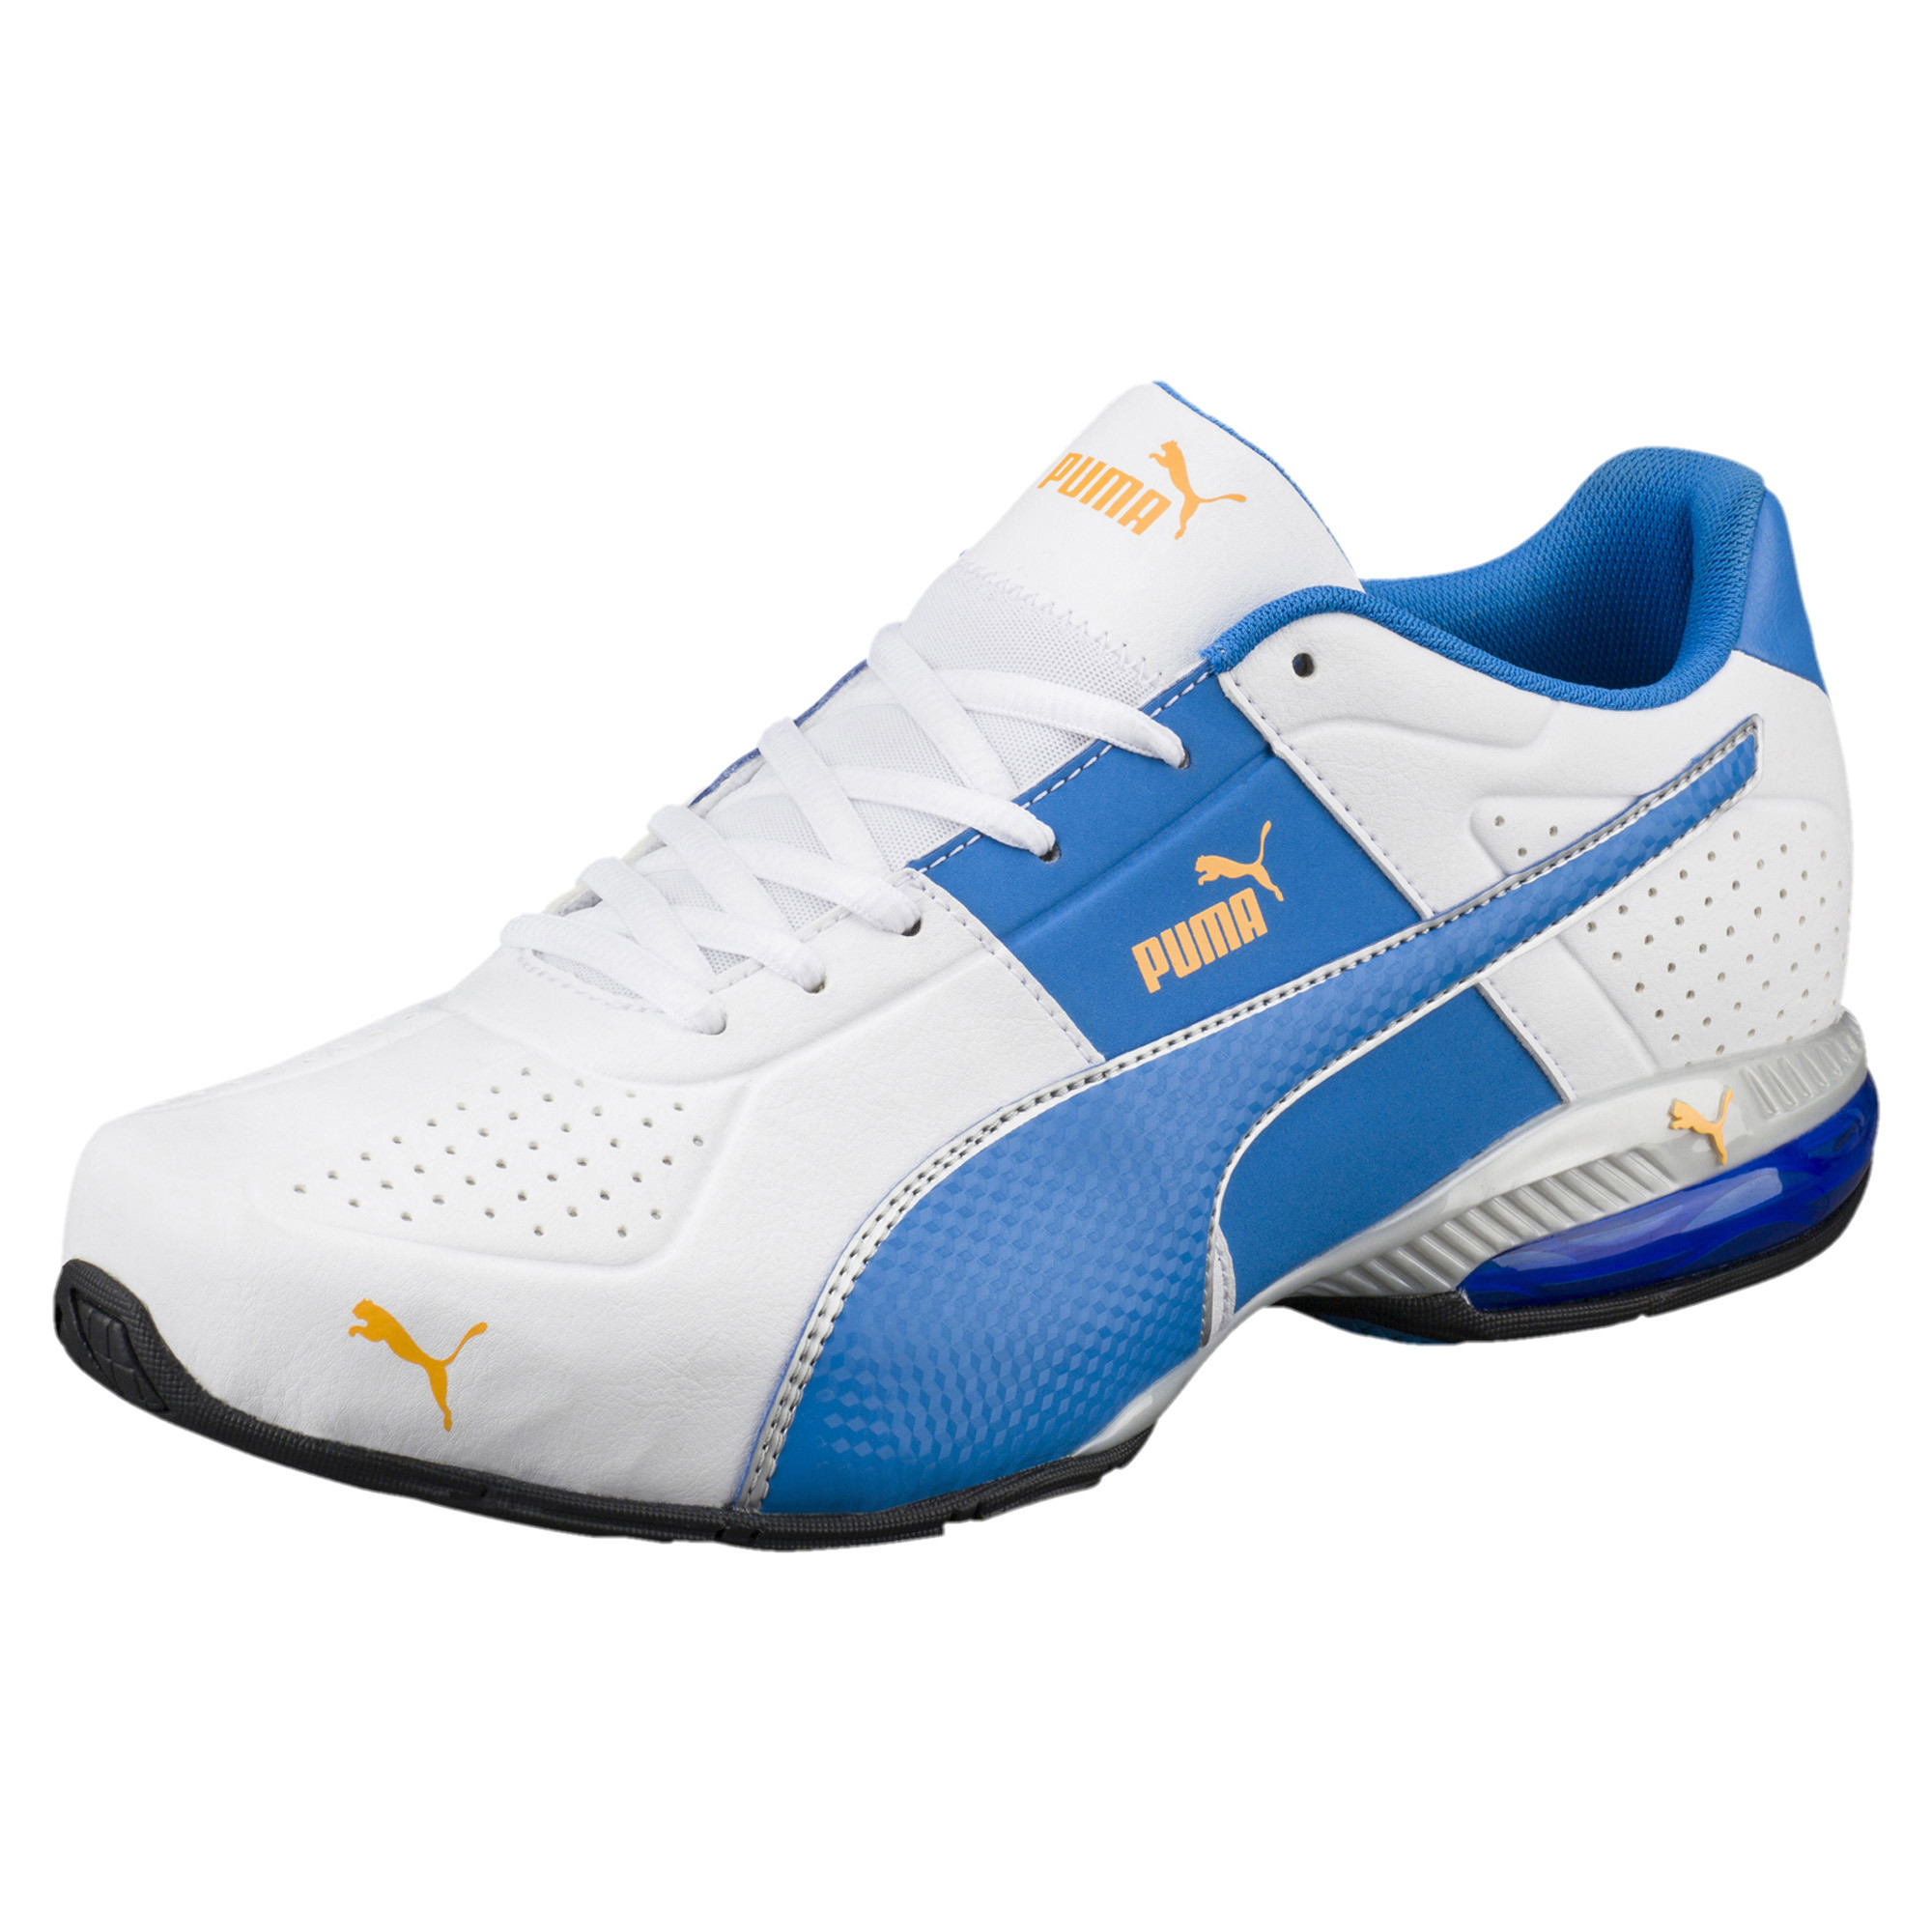 PUMA-Men-039-s-CELL-Surin-2-FM-Running-Shoes thumbnail 9